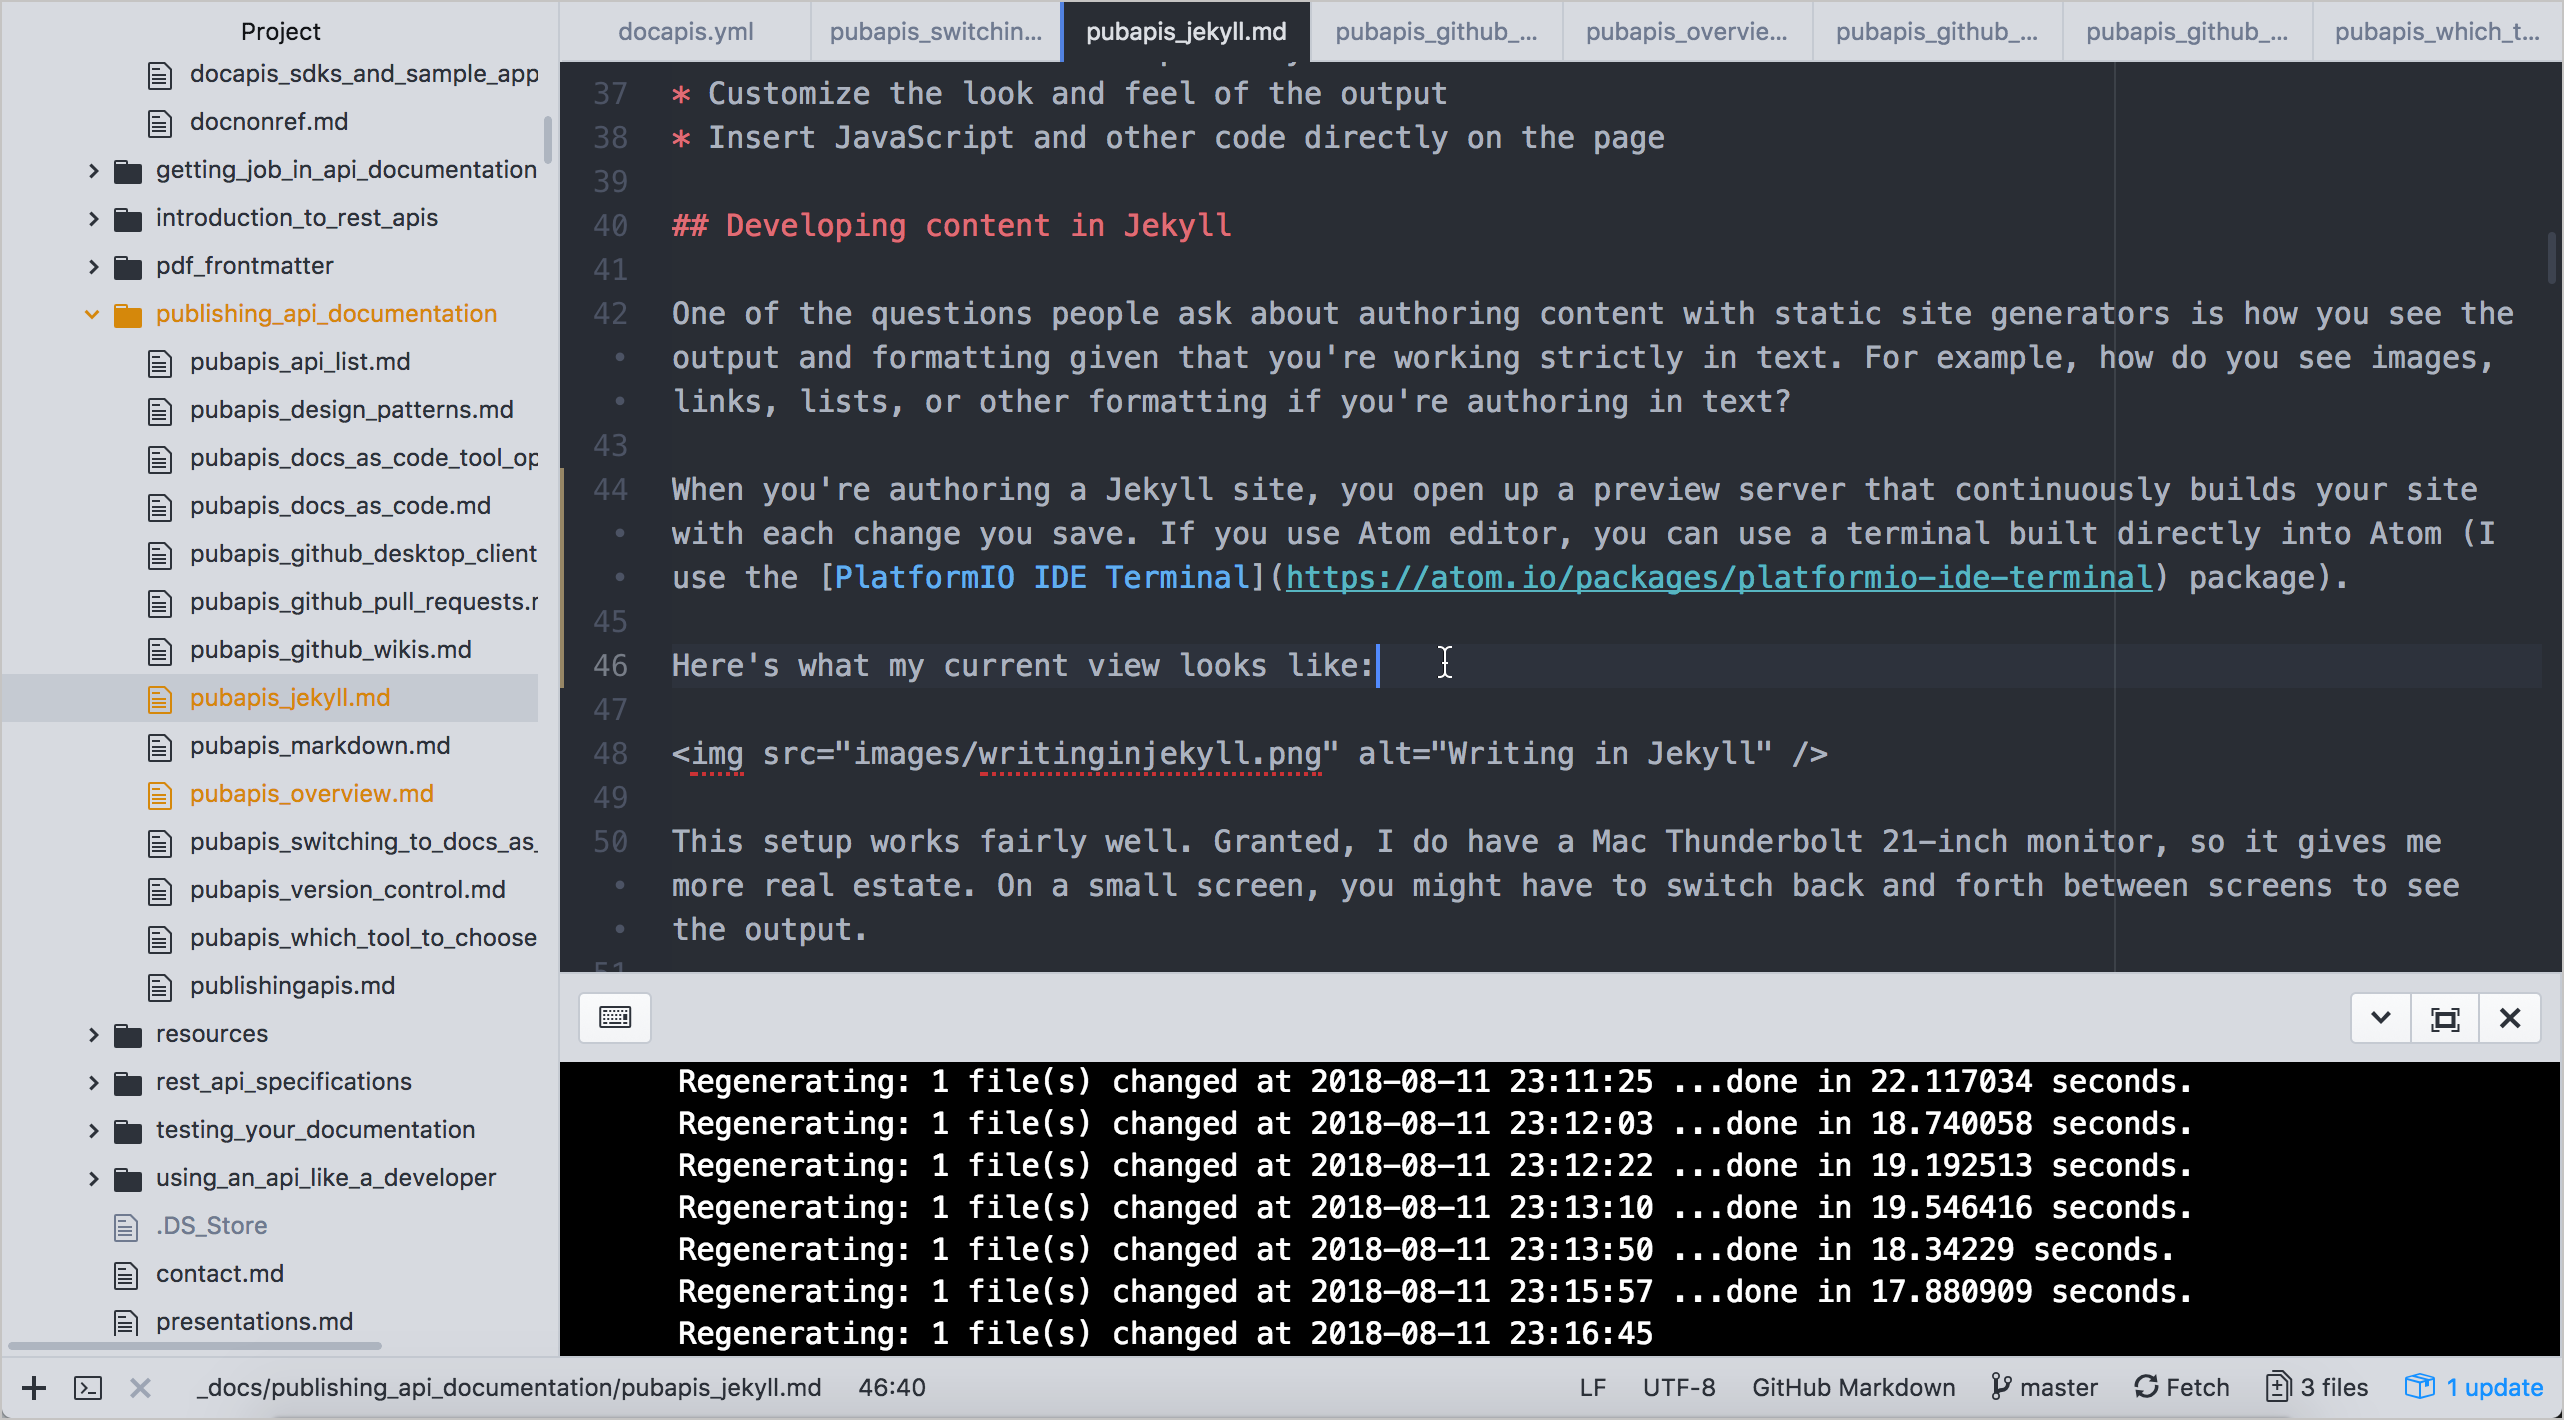 Atom text editor view while working in Jekyll